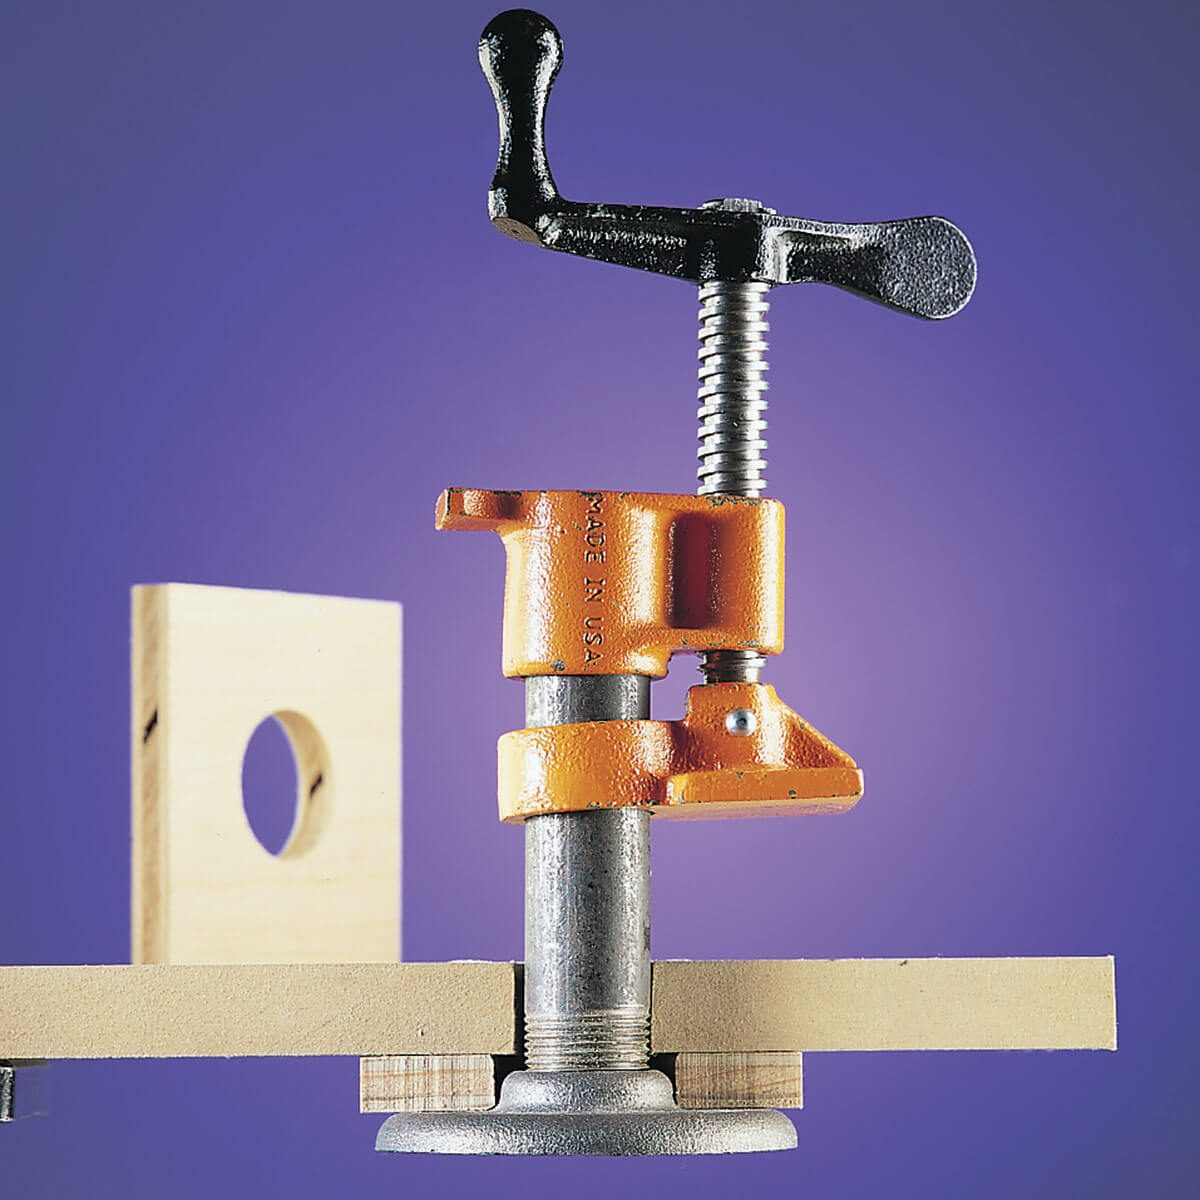 workbench clamp